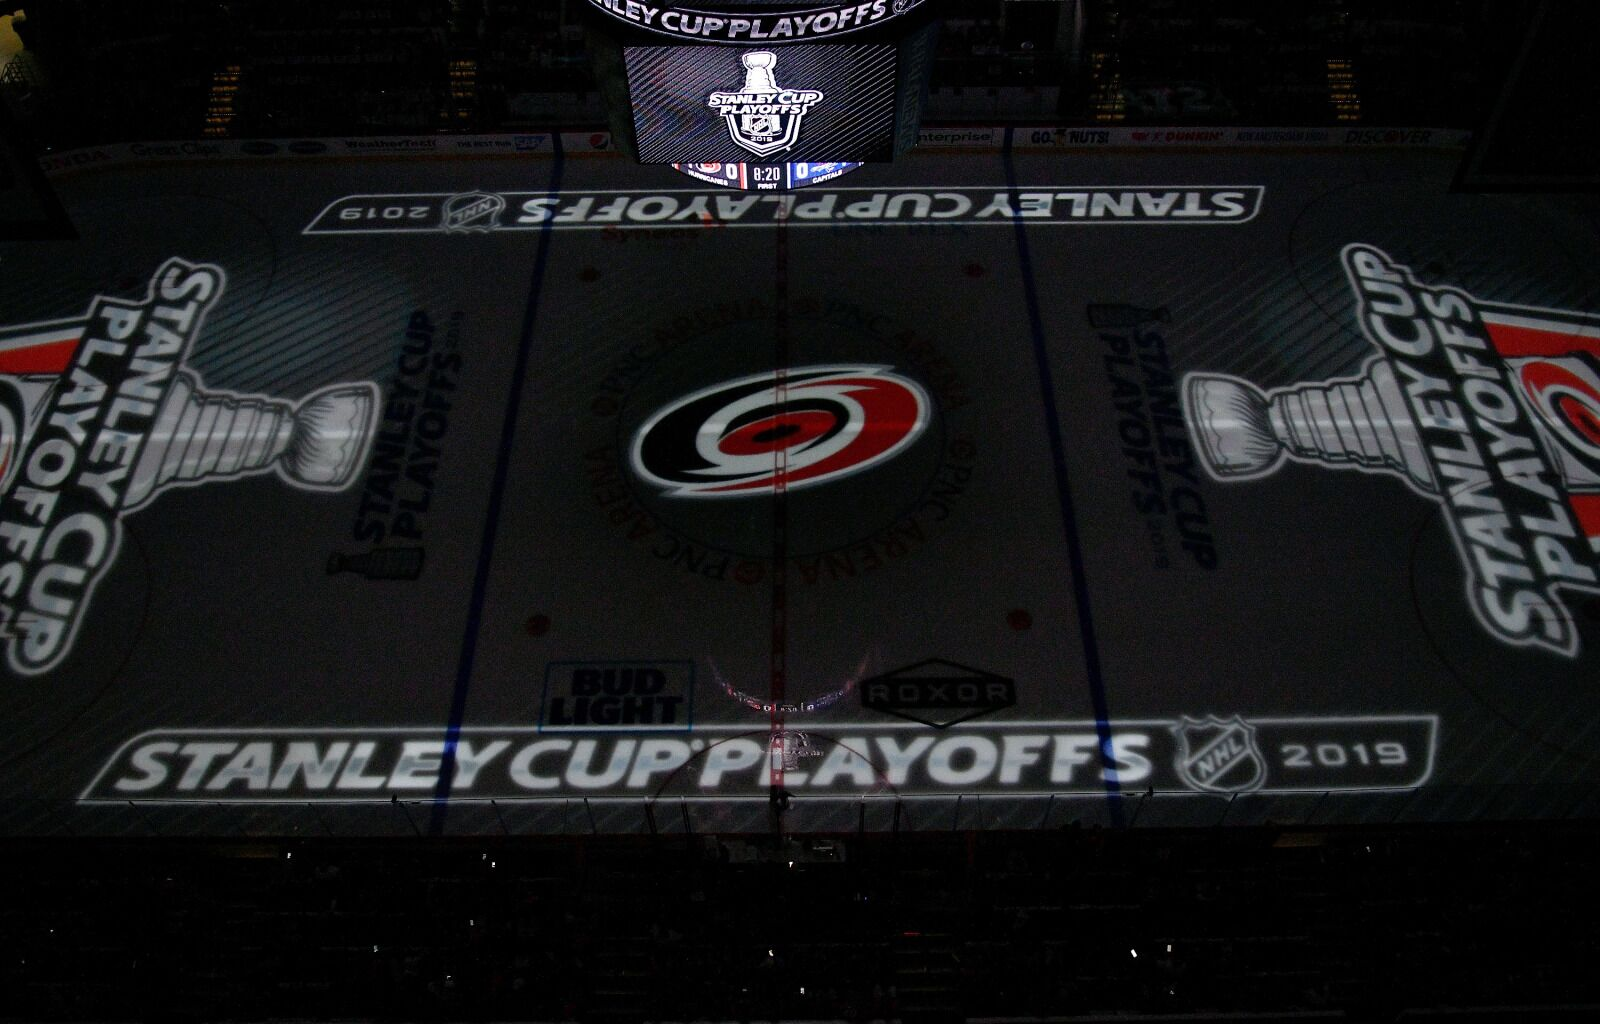 Who Should New Jersey Devils Fans Support: Capitals or Canes?